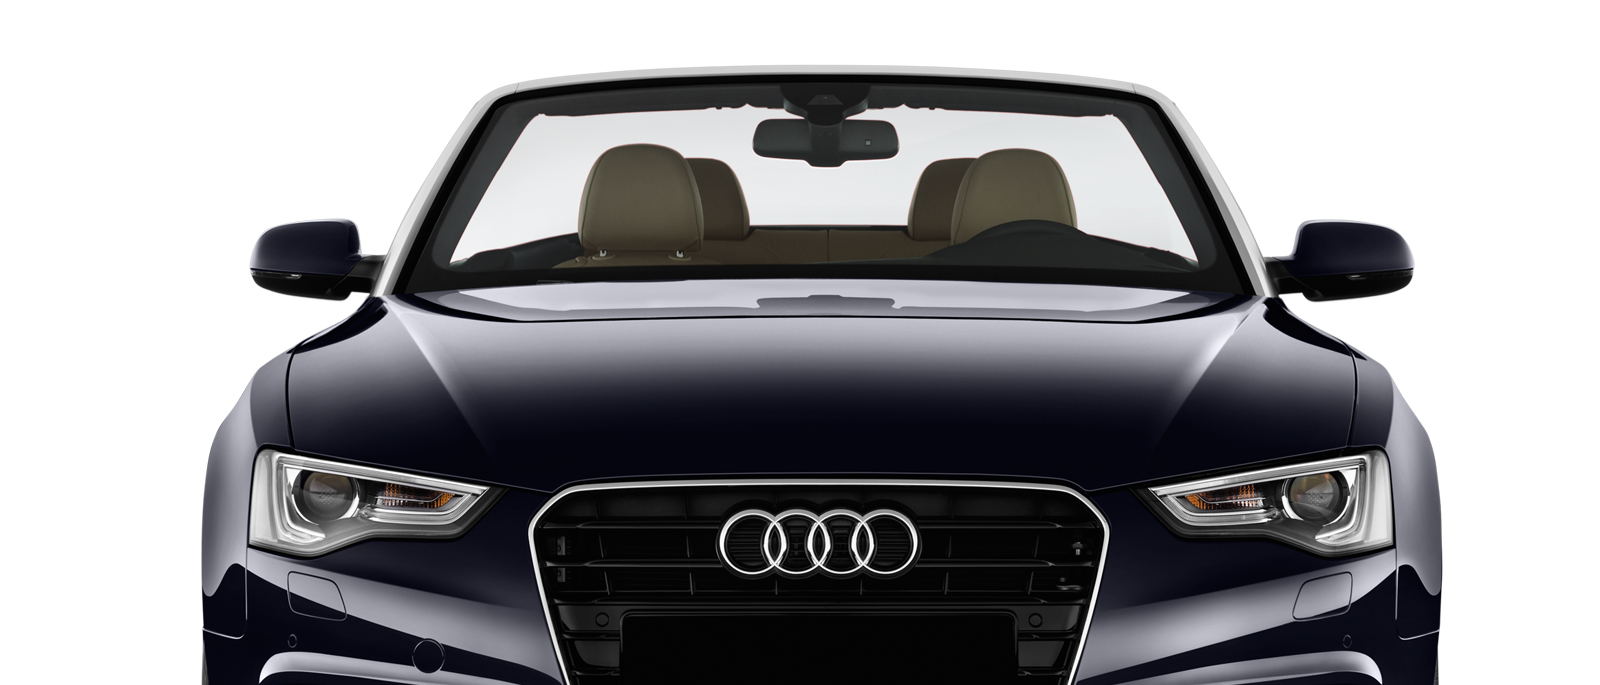 audi a5 car rental exotic car collection by enterprise. Black Bedroom Furniture Sets. Home Design Ideas